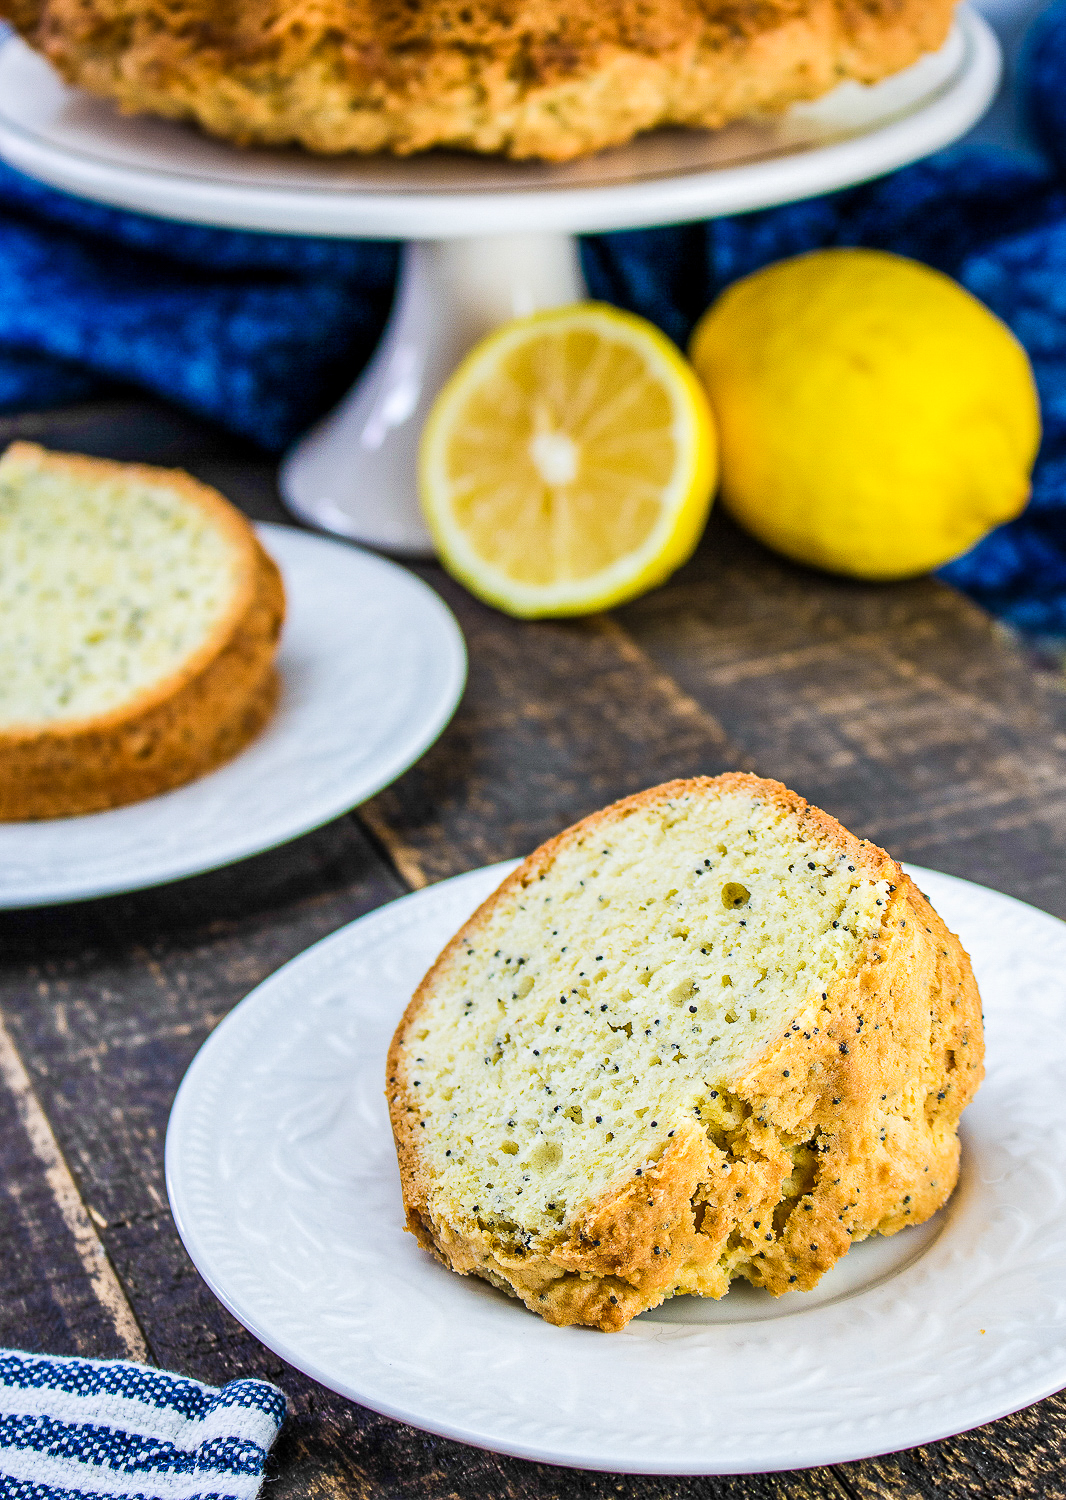 This easy lemon poppy seed bundt cake is the perfect dessert to make for a crowd. It's sweet and tangy and sure to be a hit!